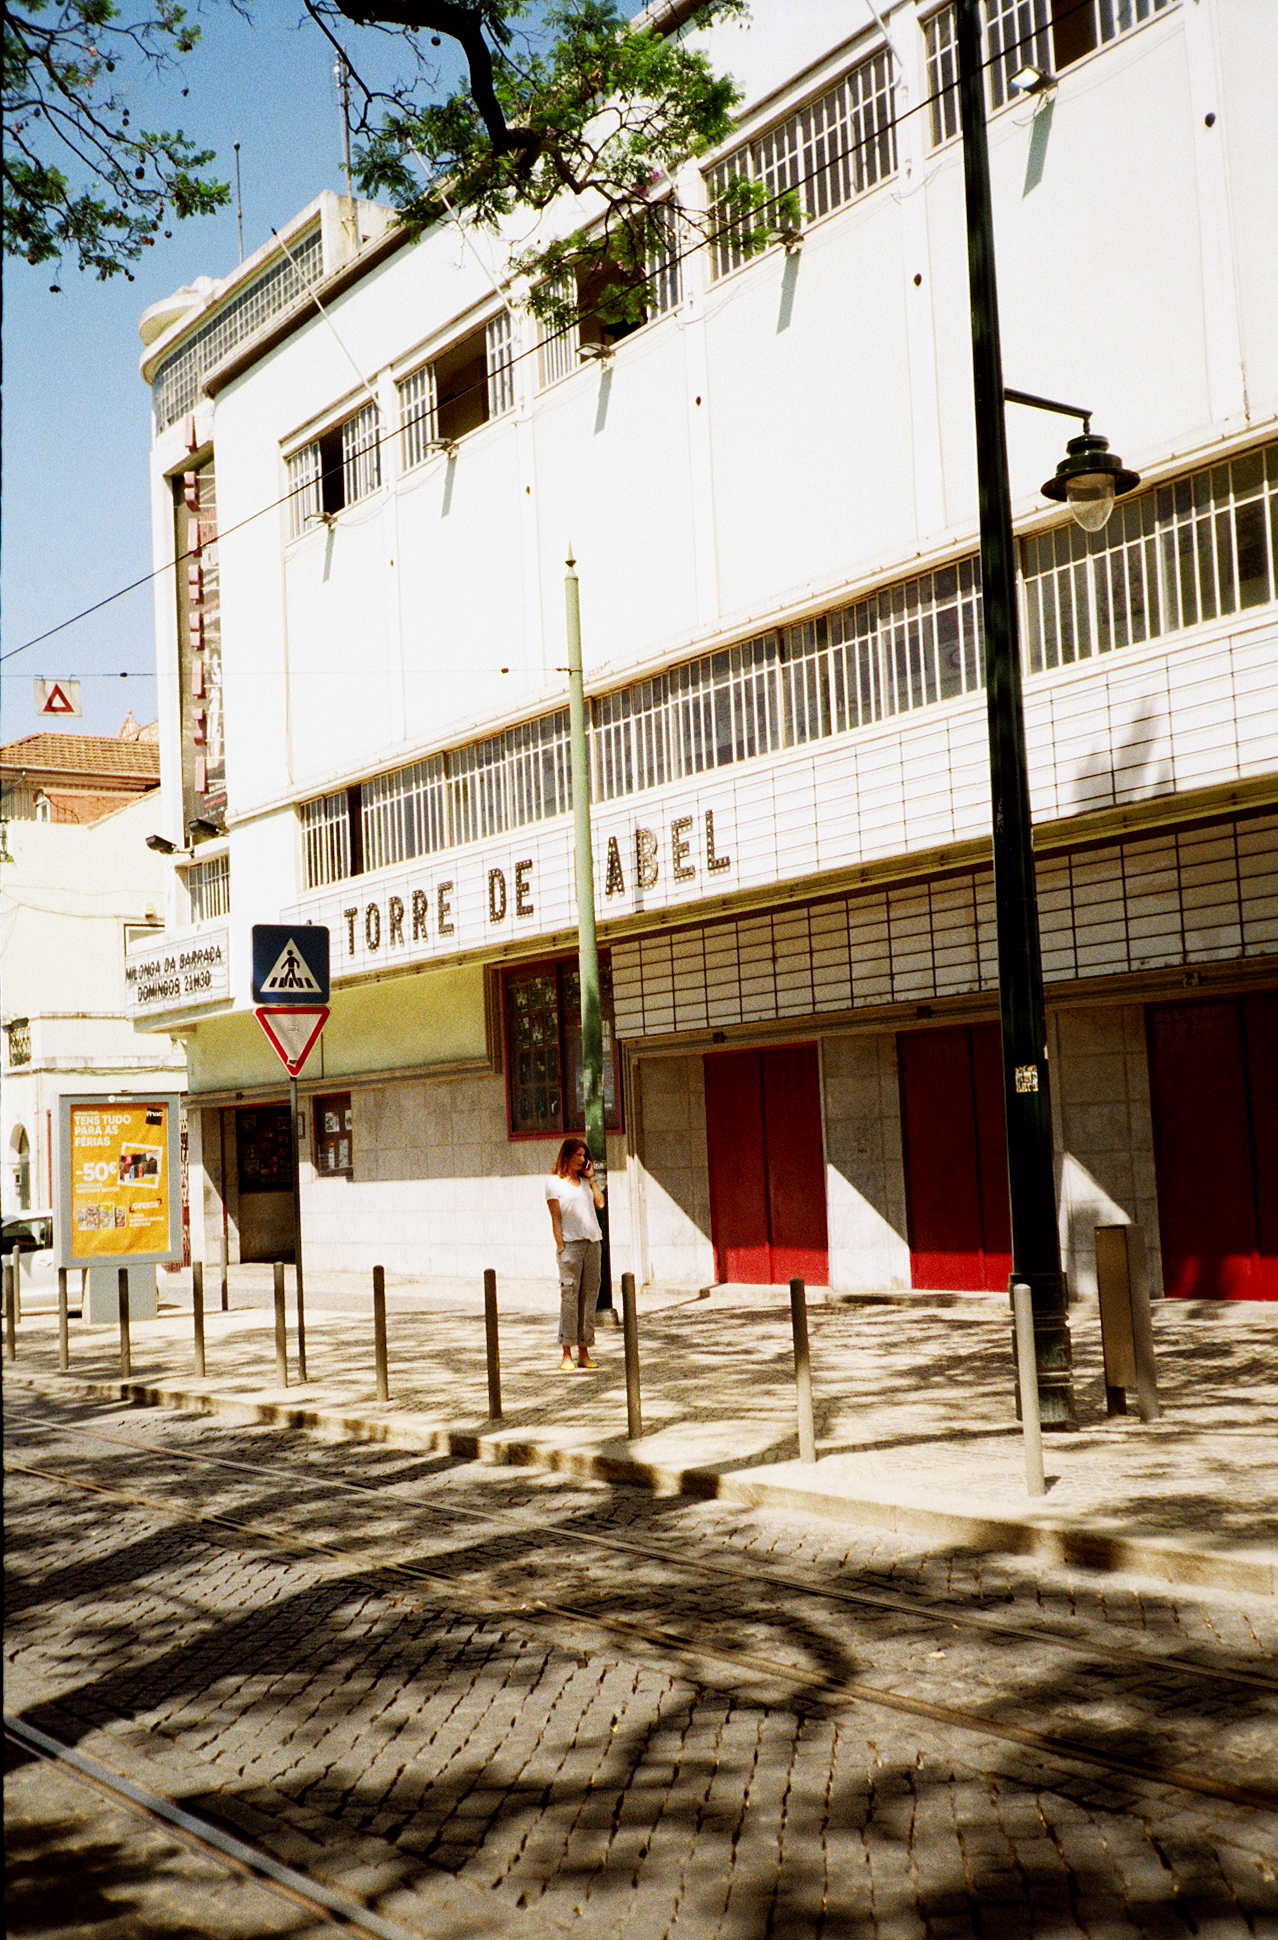 Lisbon 35mm film diary by London based photographer Ailera Stone